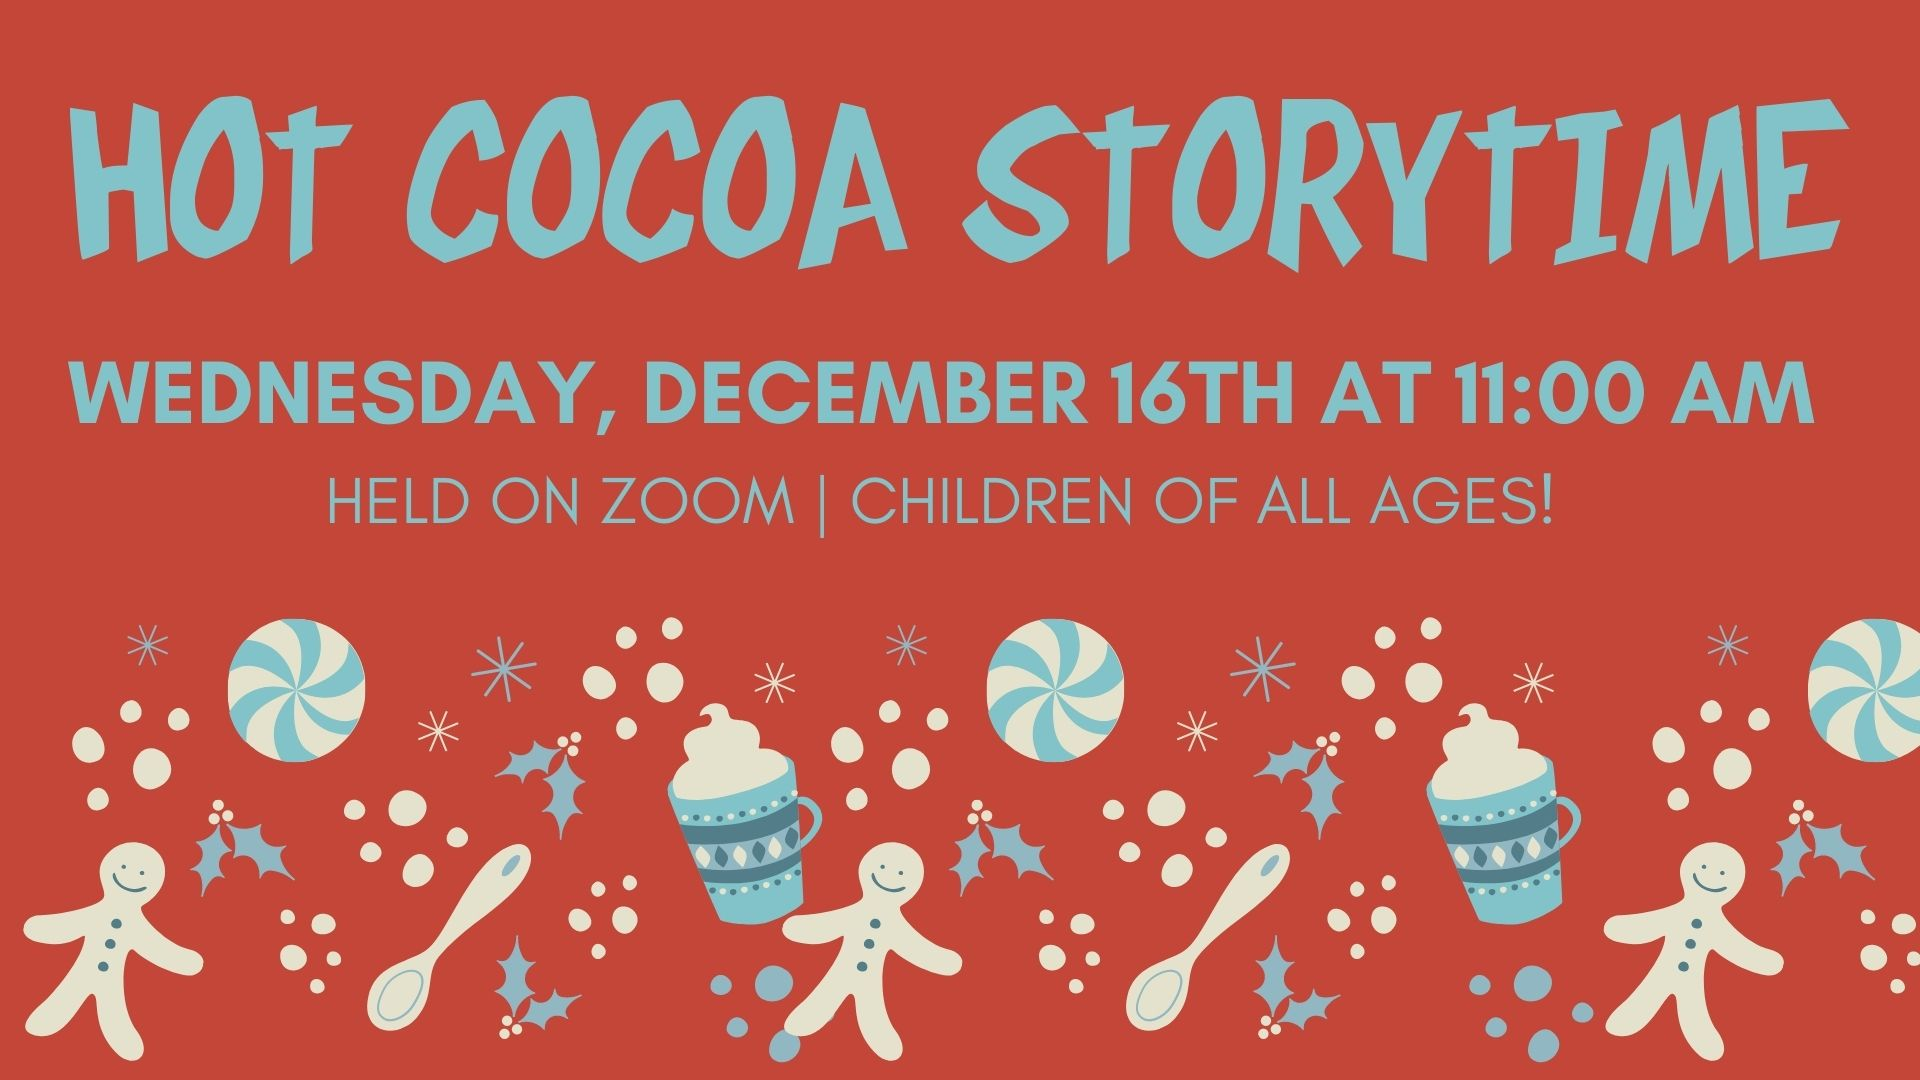 Hot Cocoa Storytime